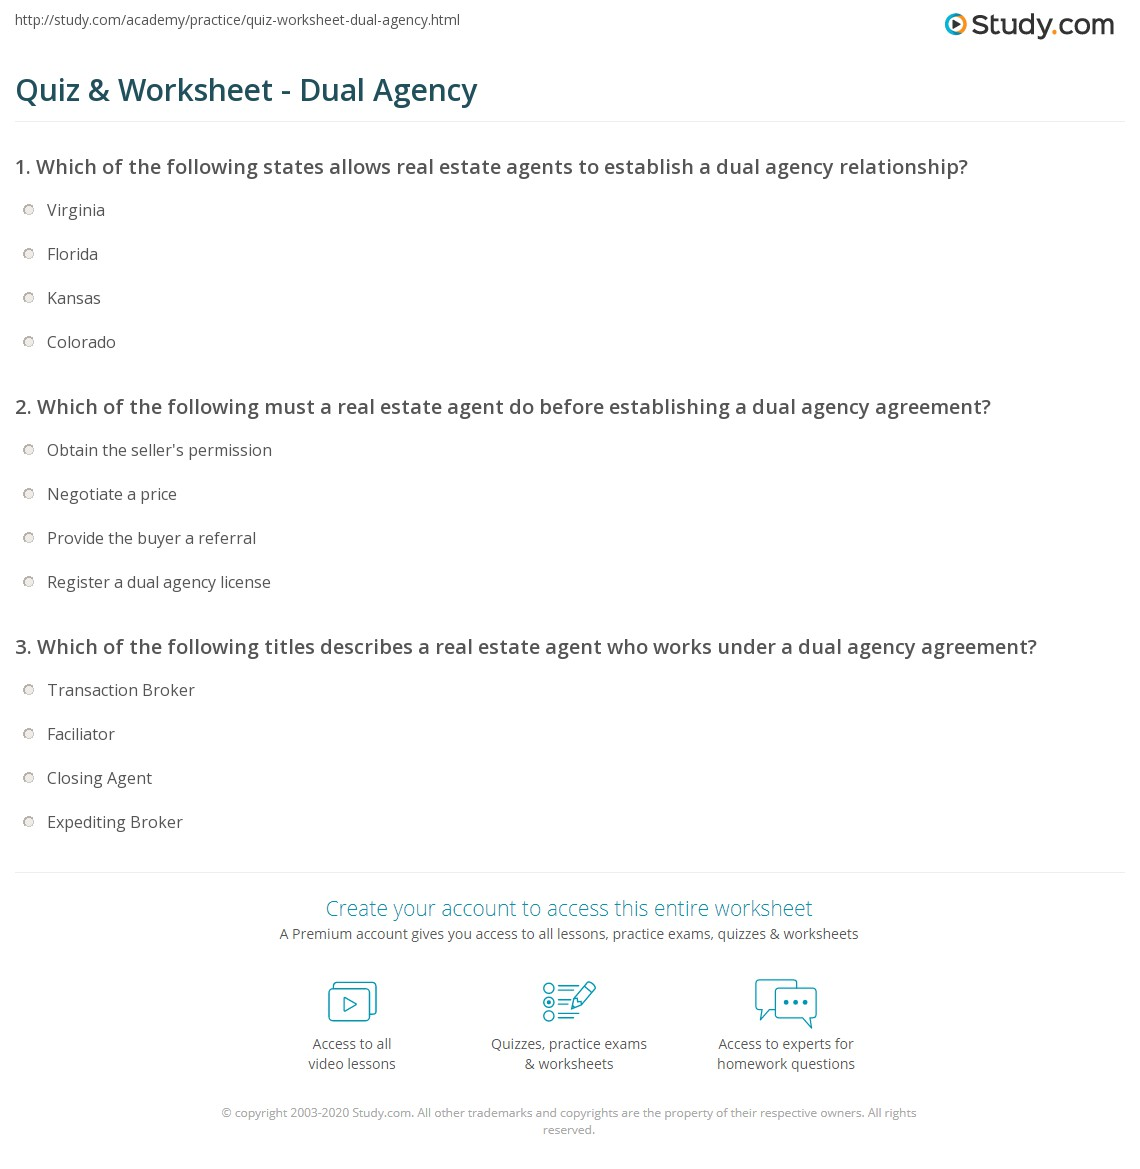 Which Of The Following Must A Real Estate Agent Do Before Elishing Dual Agency Agreement